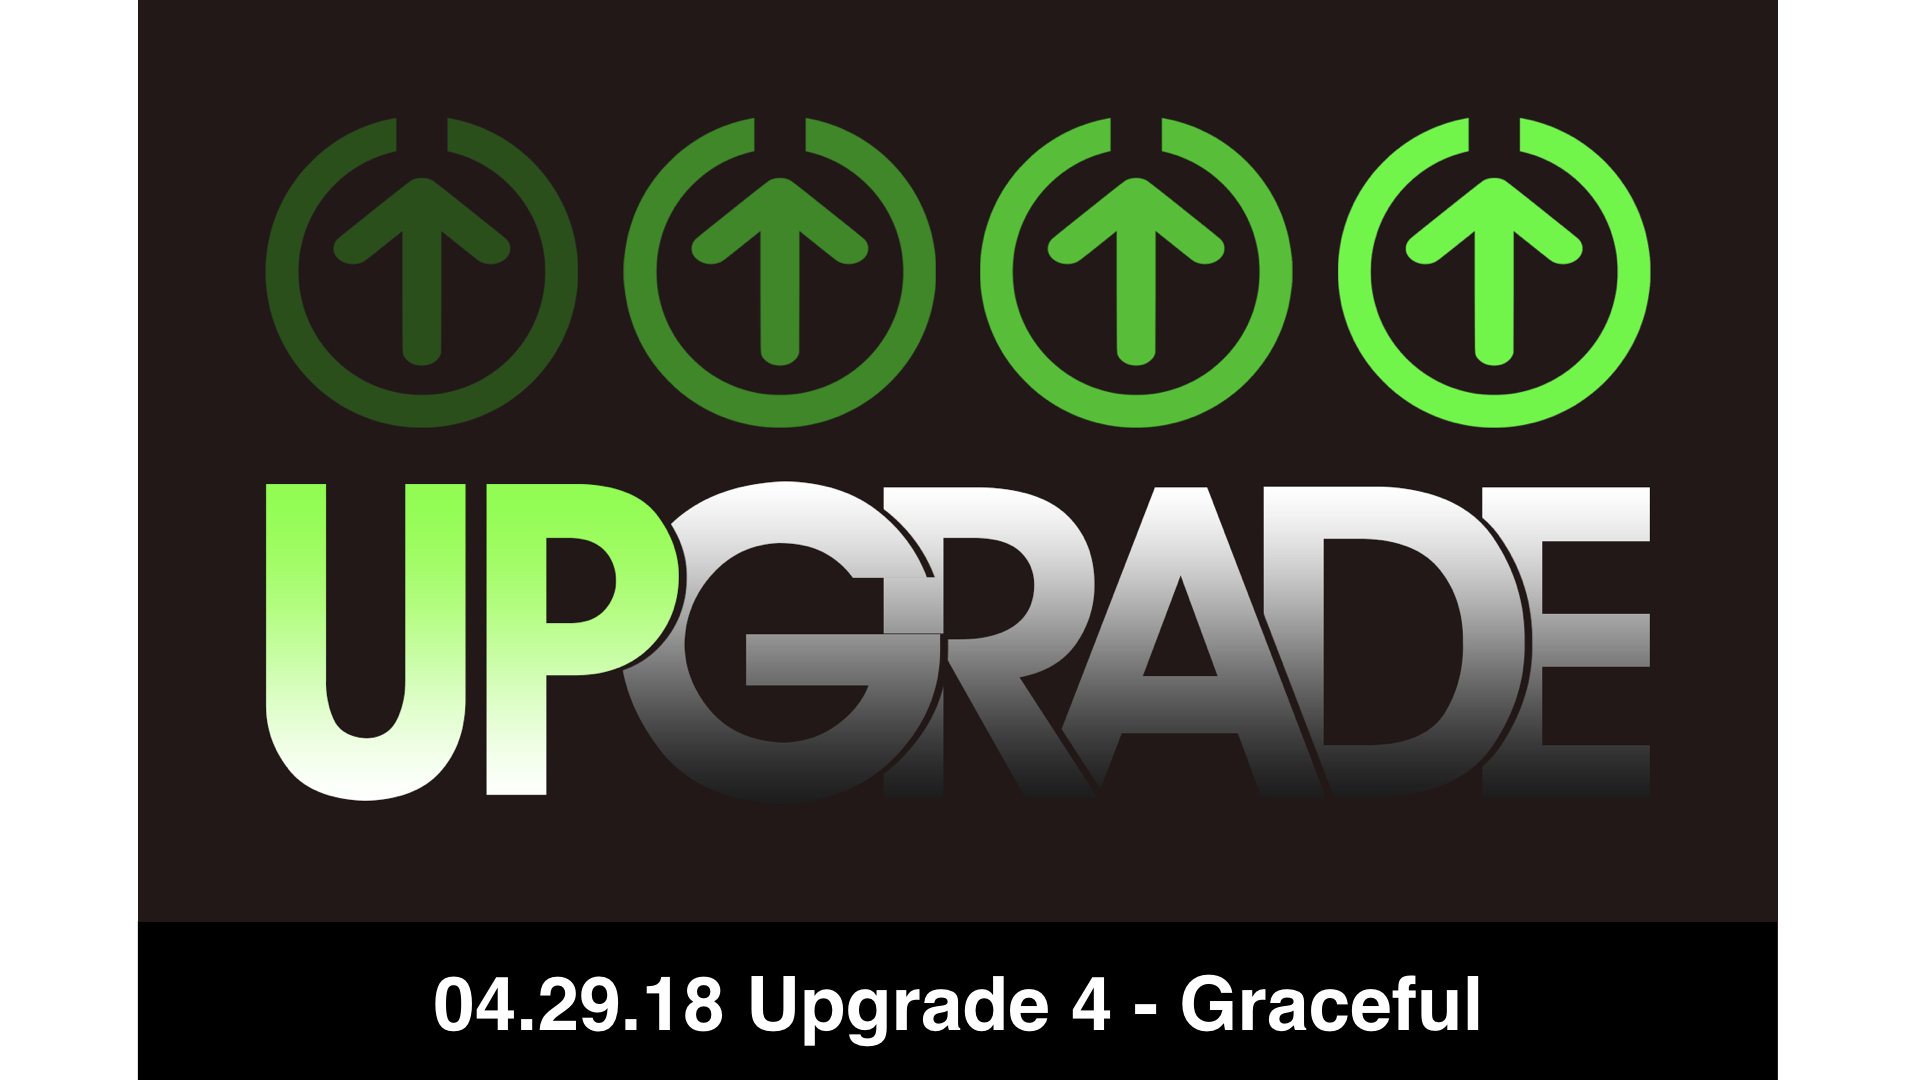 04.29.18 Upgrade 4 - Grace